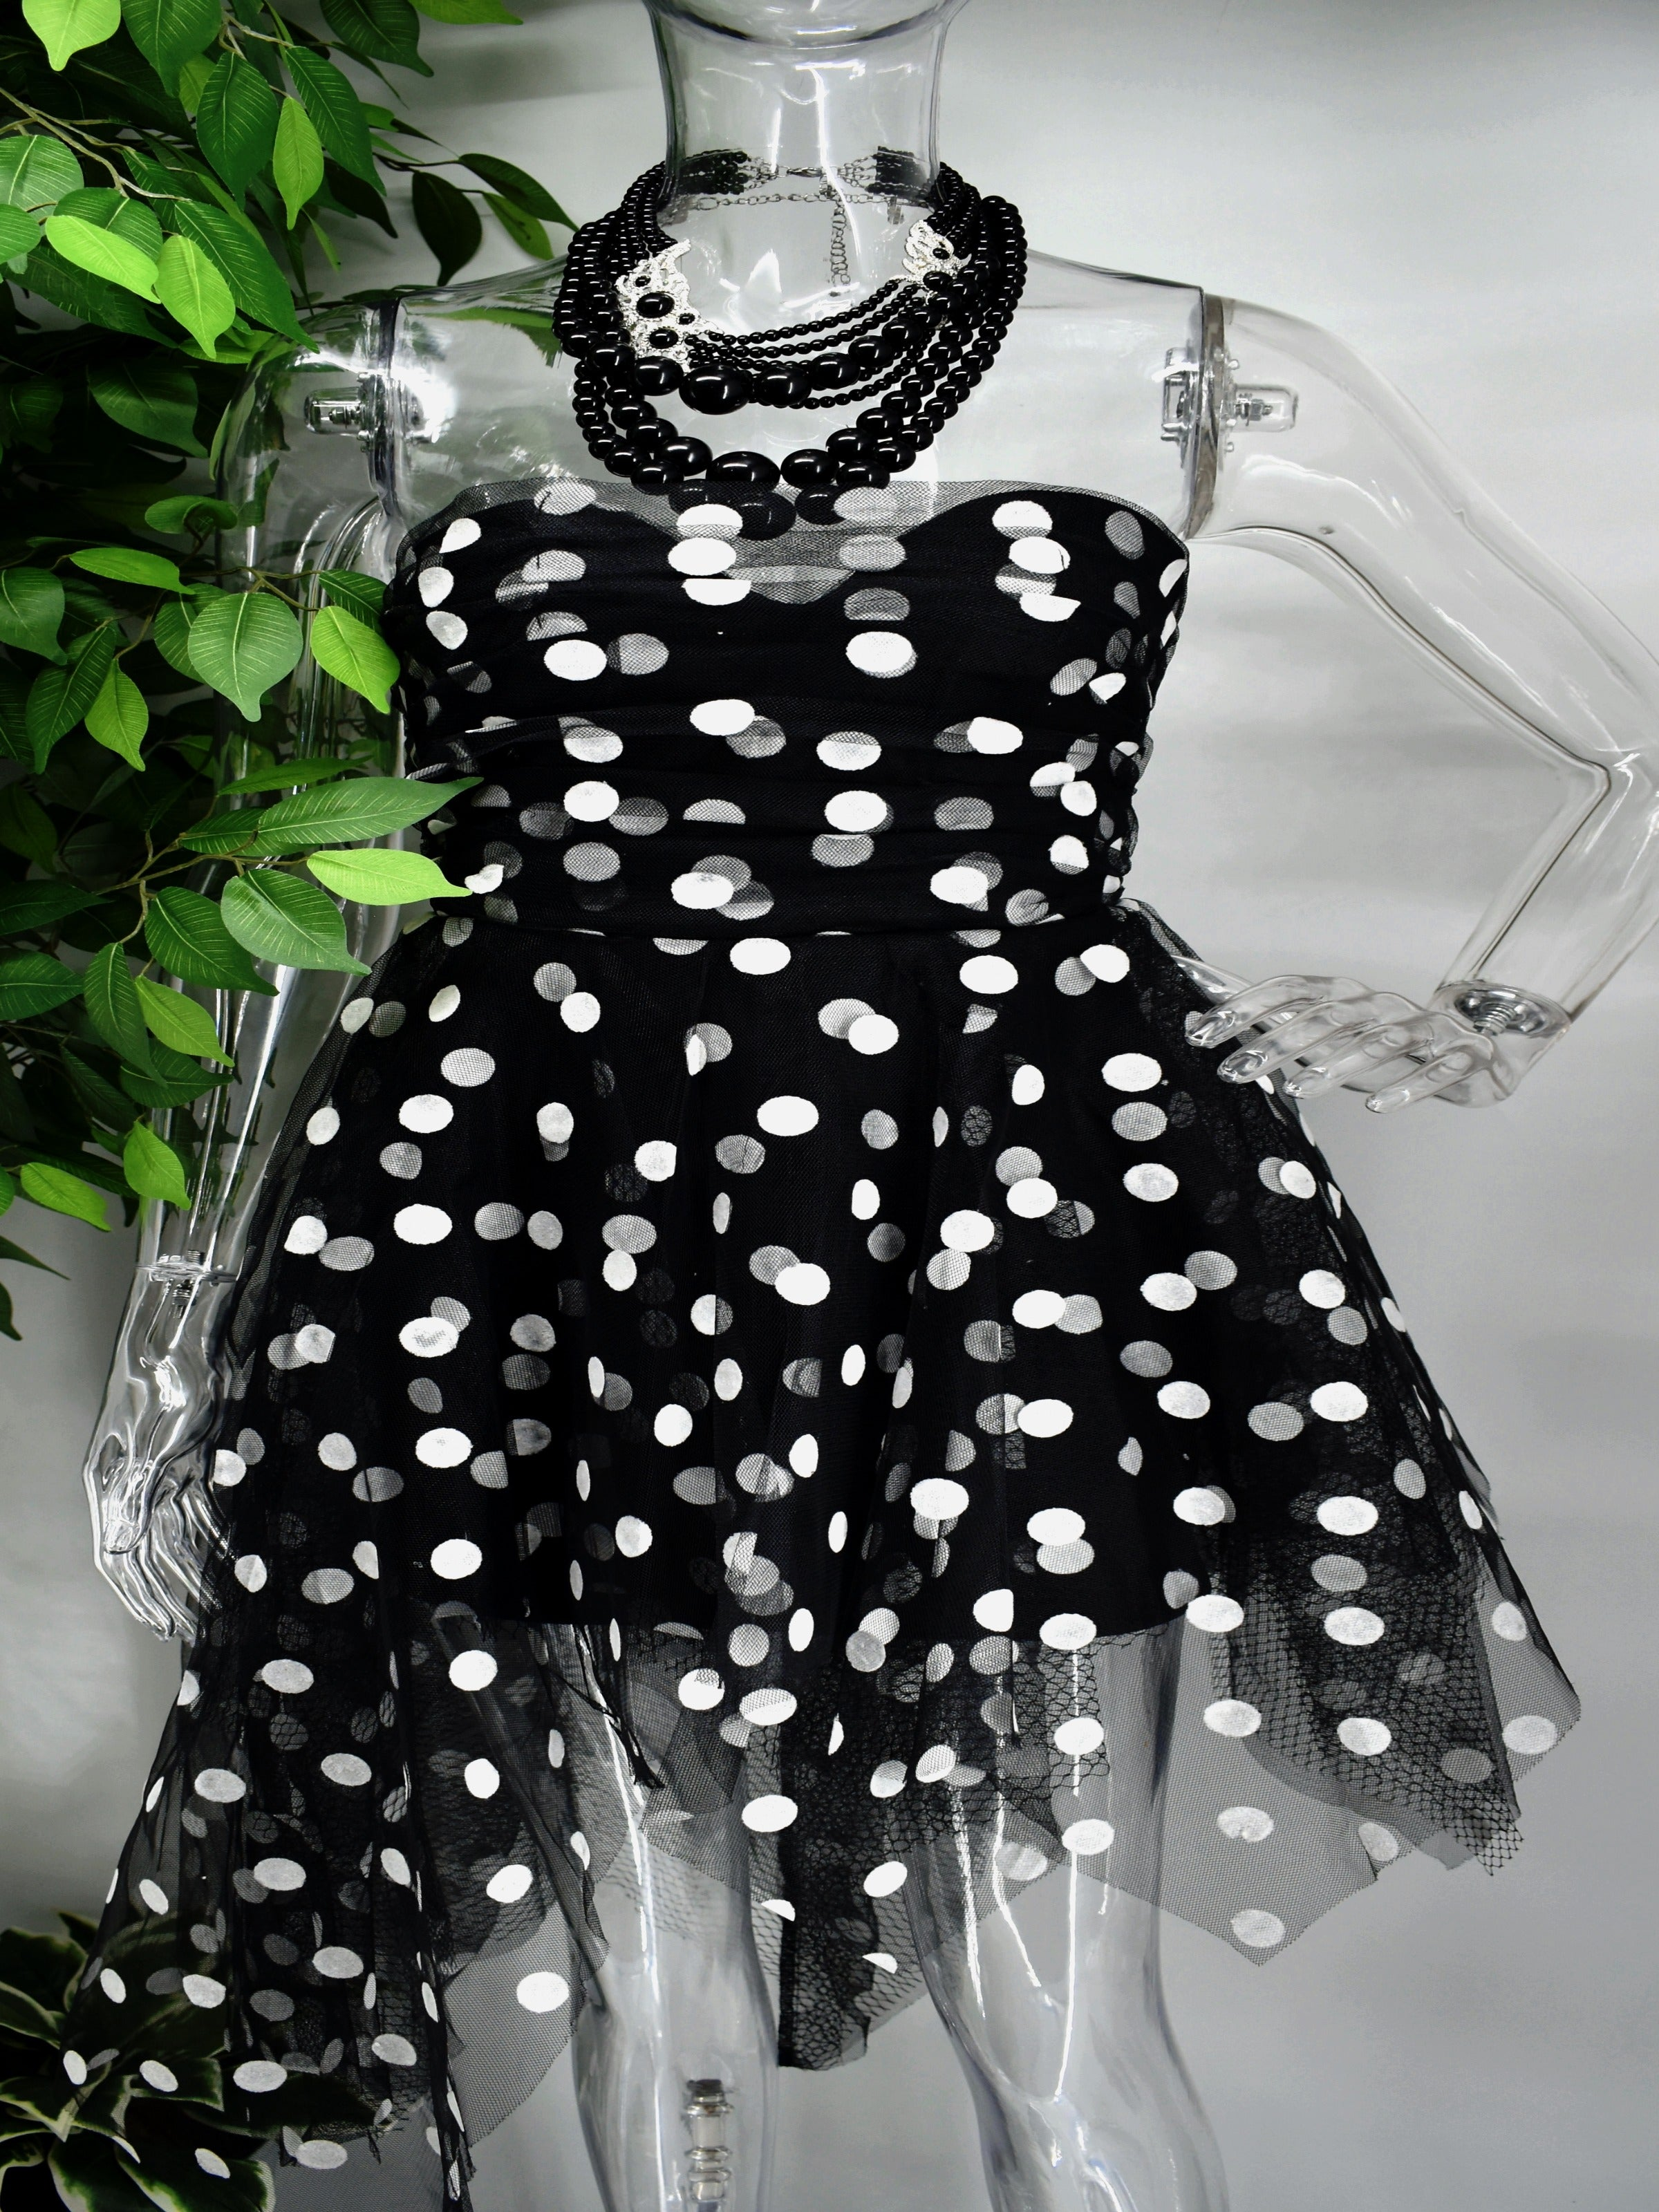 Be Bold and beautiful in our Blessings Polka dot dress.  Enjoy our blessings and its sweetheart neckline, fitted bodice and flirty flair skirt with an uneven hem.